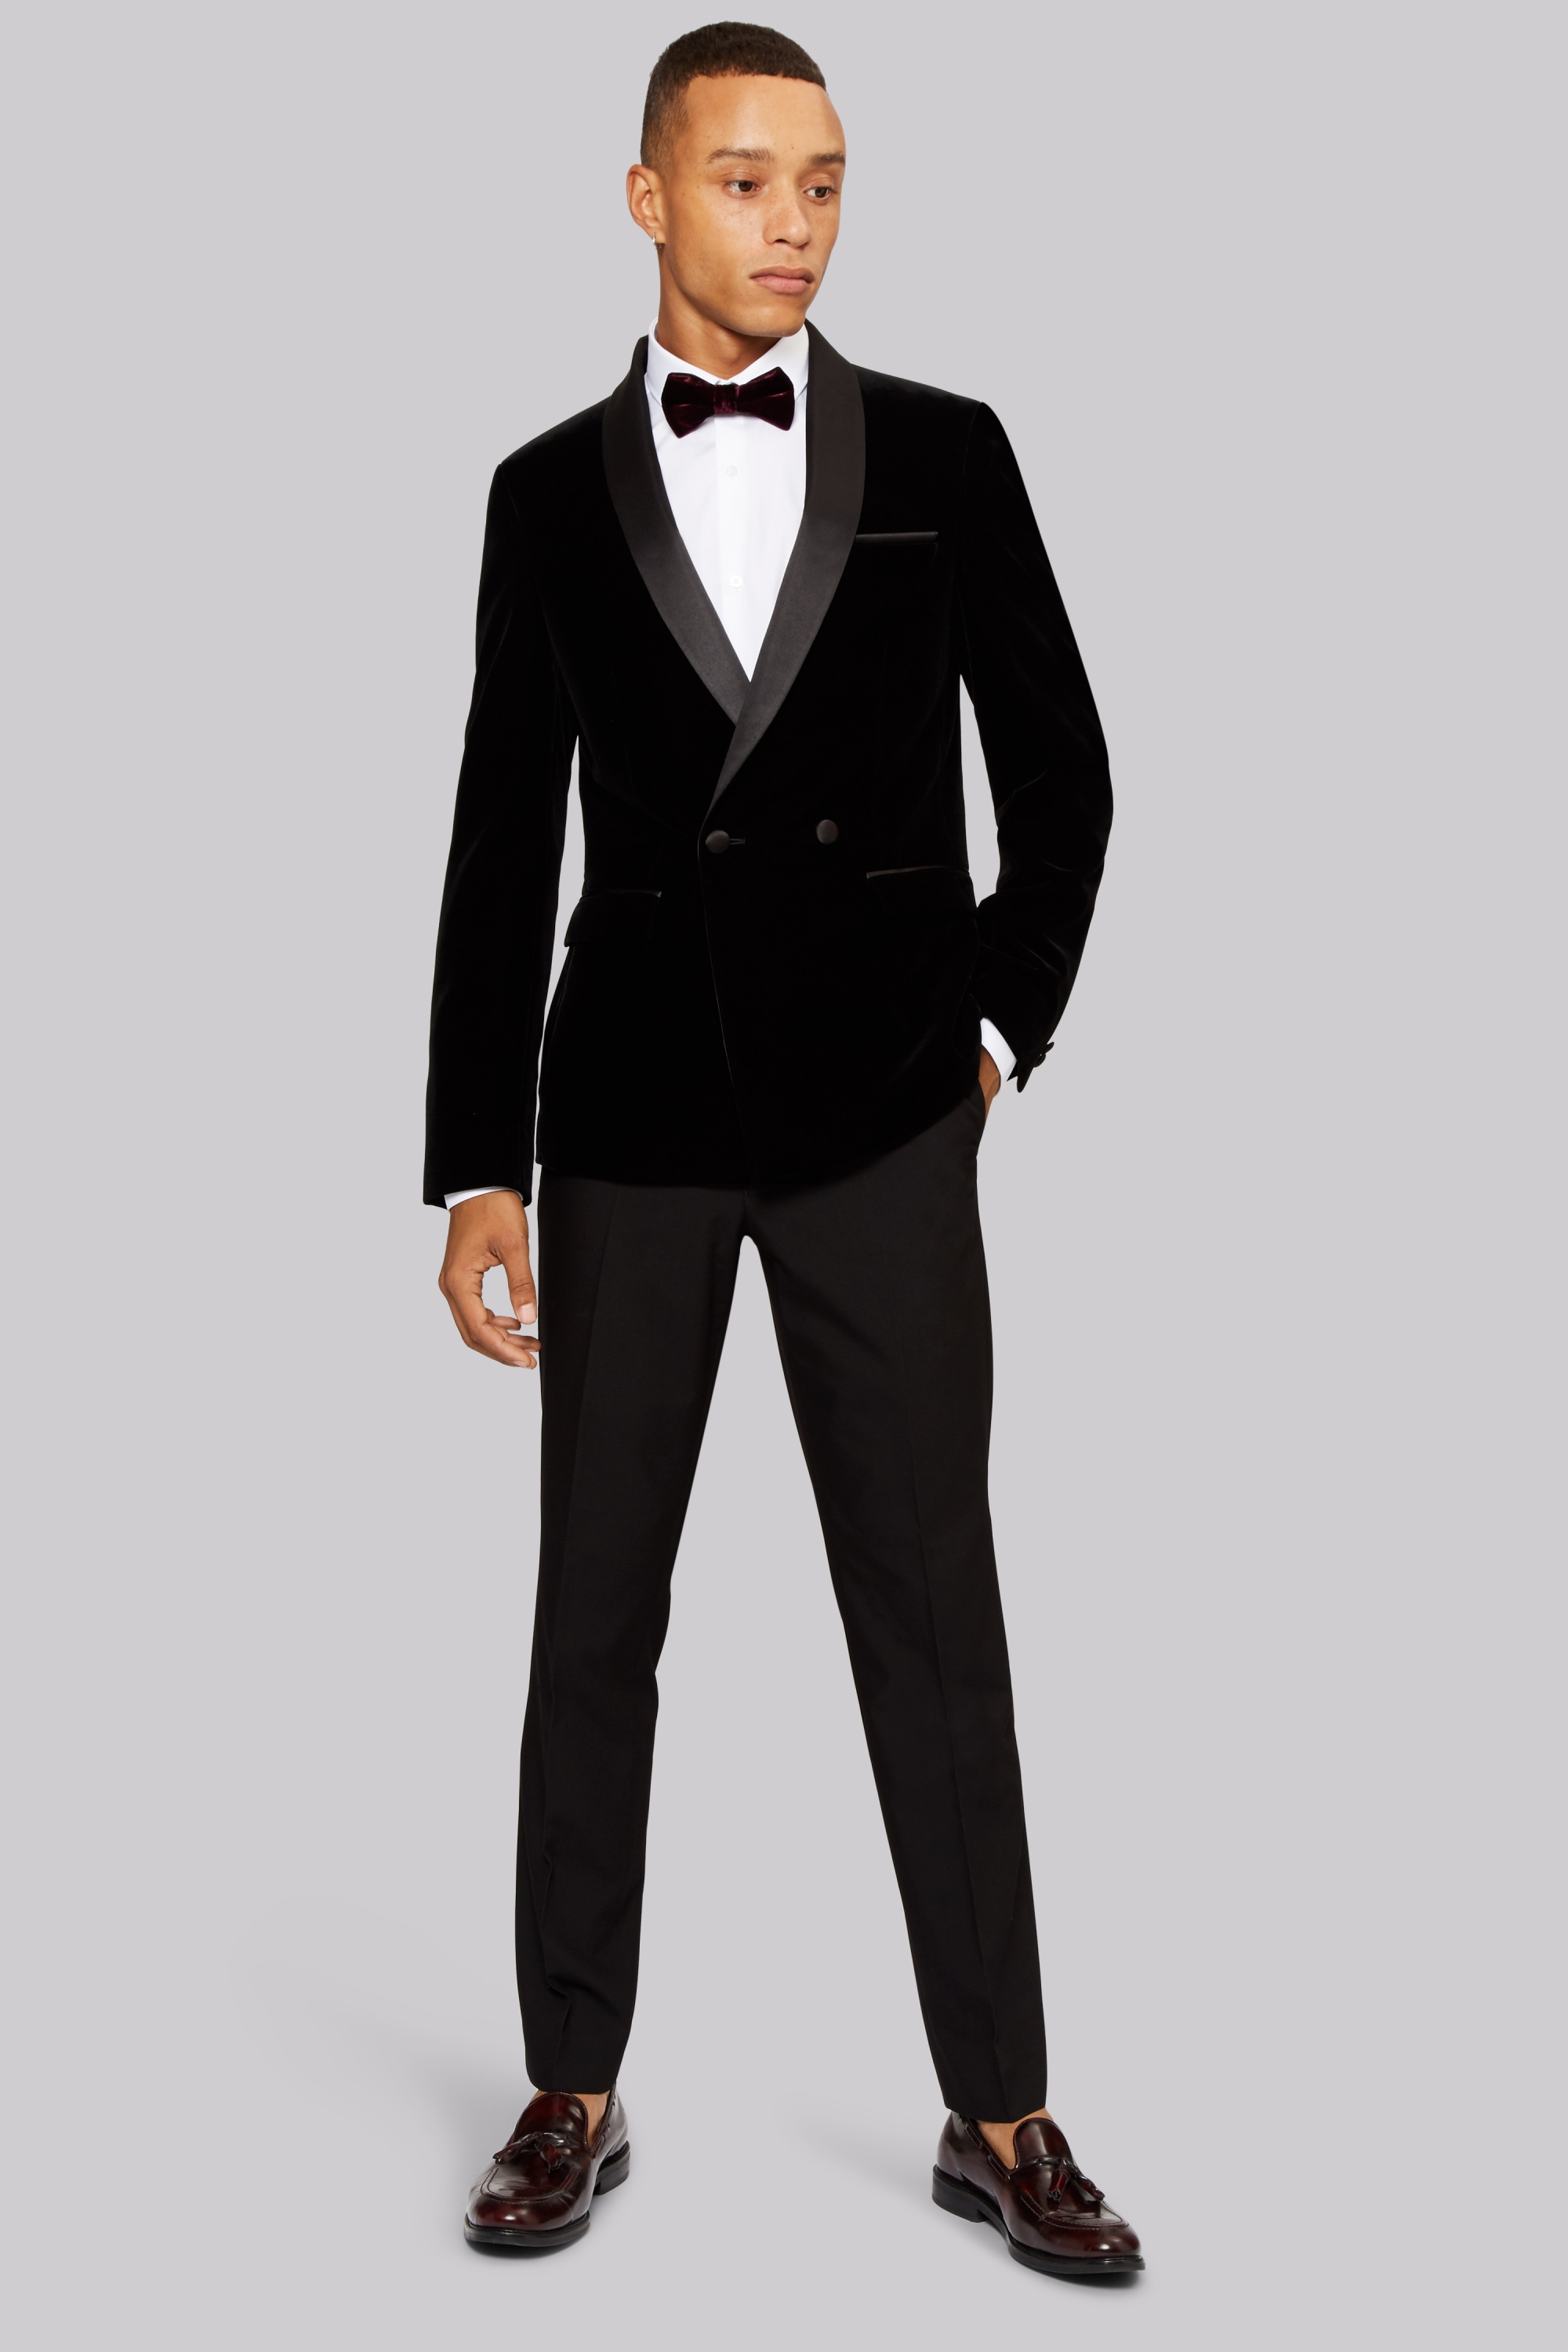 Black tie navy jacket